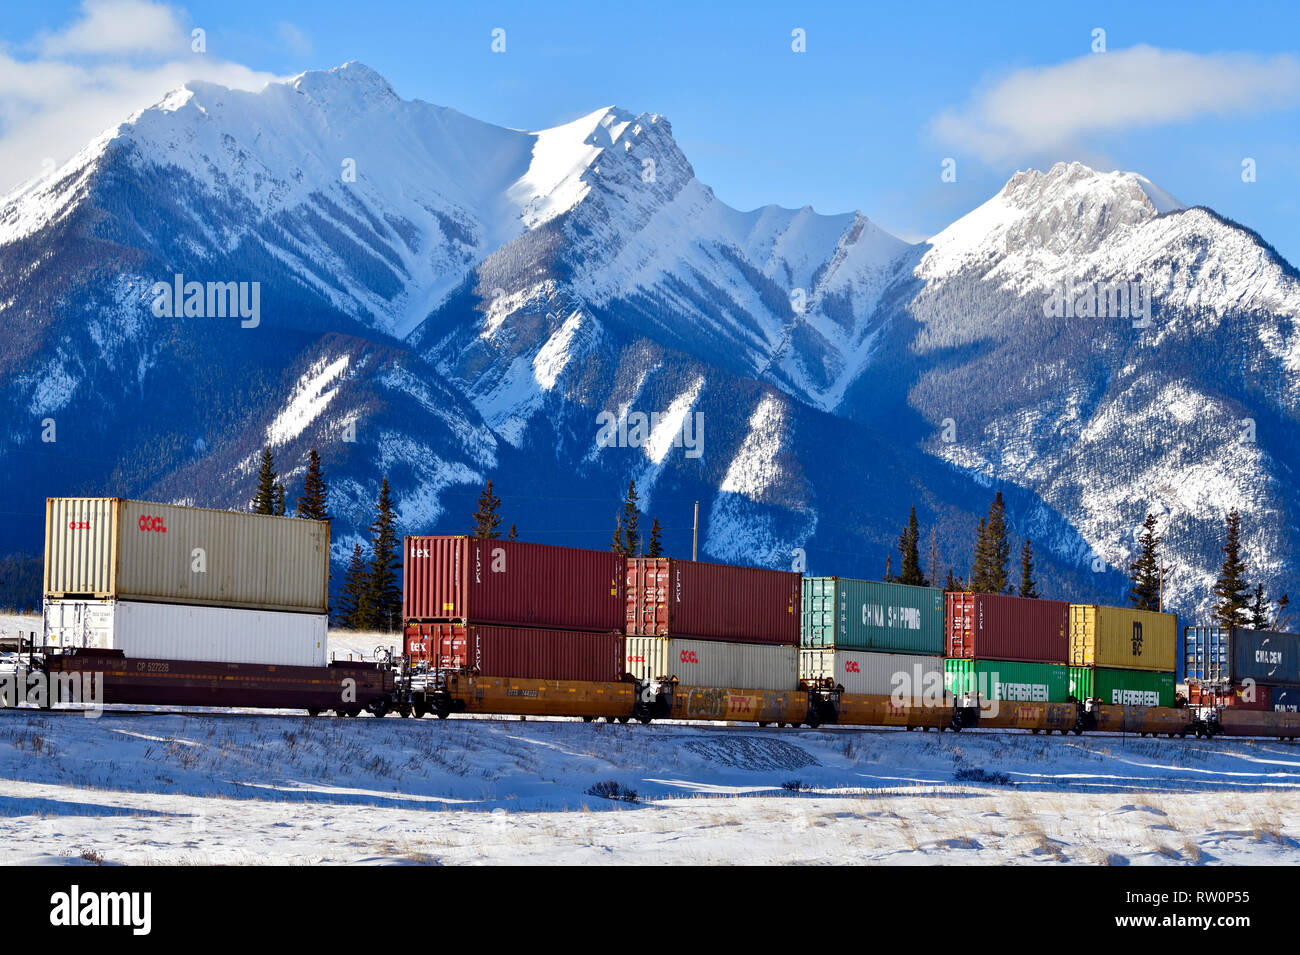 A Canadian National freight train hauling a load og container cars through the snow-capped rocky mountain of Alberta Canada. - Stock Image